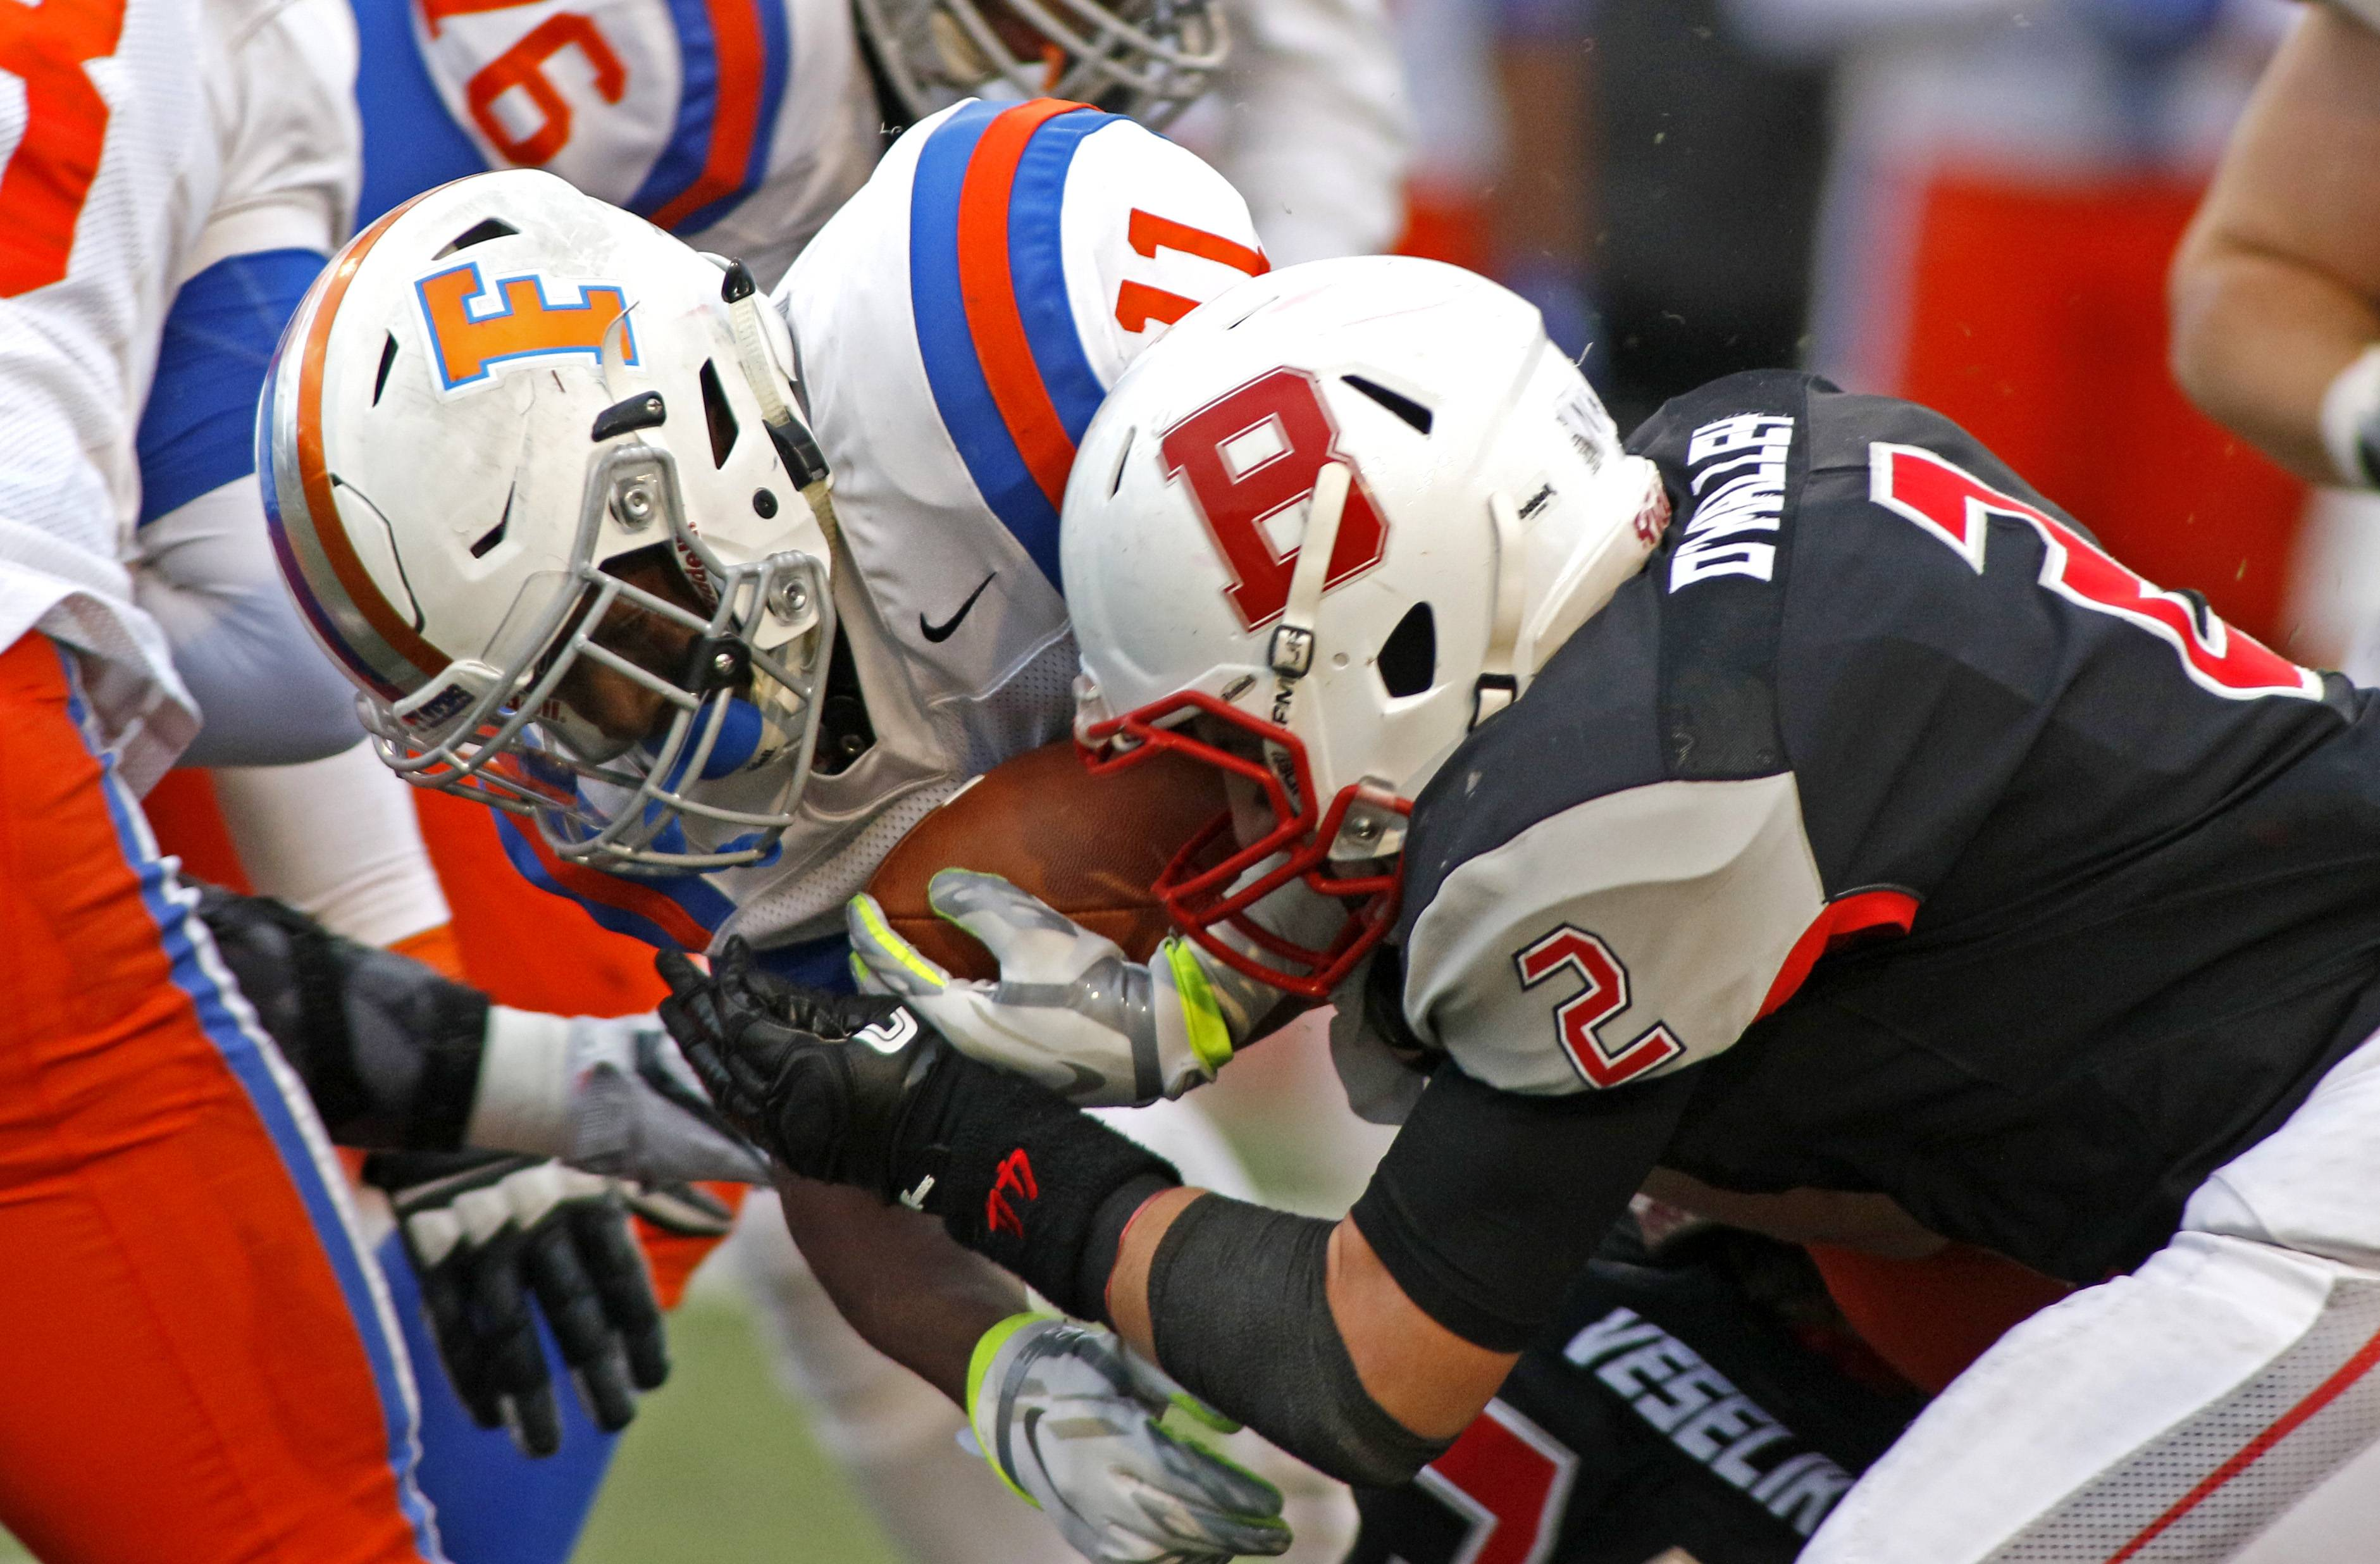 Benet Academy's Danny O'Malley (2) wraps up East St. Louis' Jigg Brown (11) during Class 7A semifinal playoff football action in Lisle. East St. Louis meets Plainfield North for the Class 7A championship on Saturday.